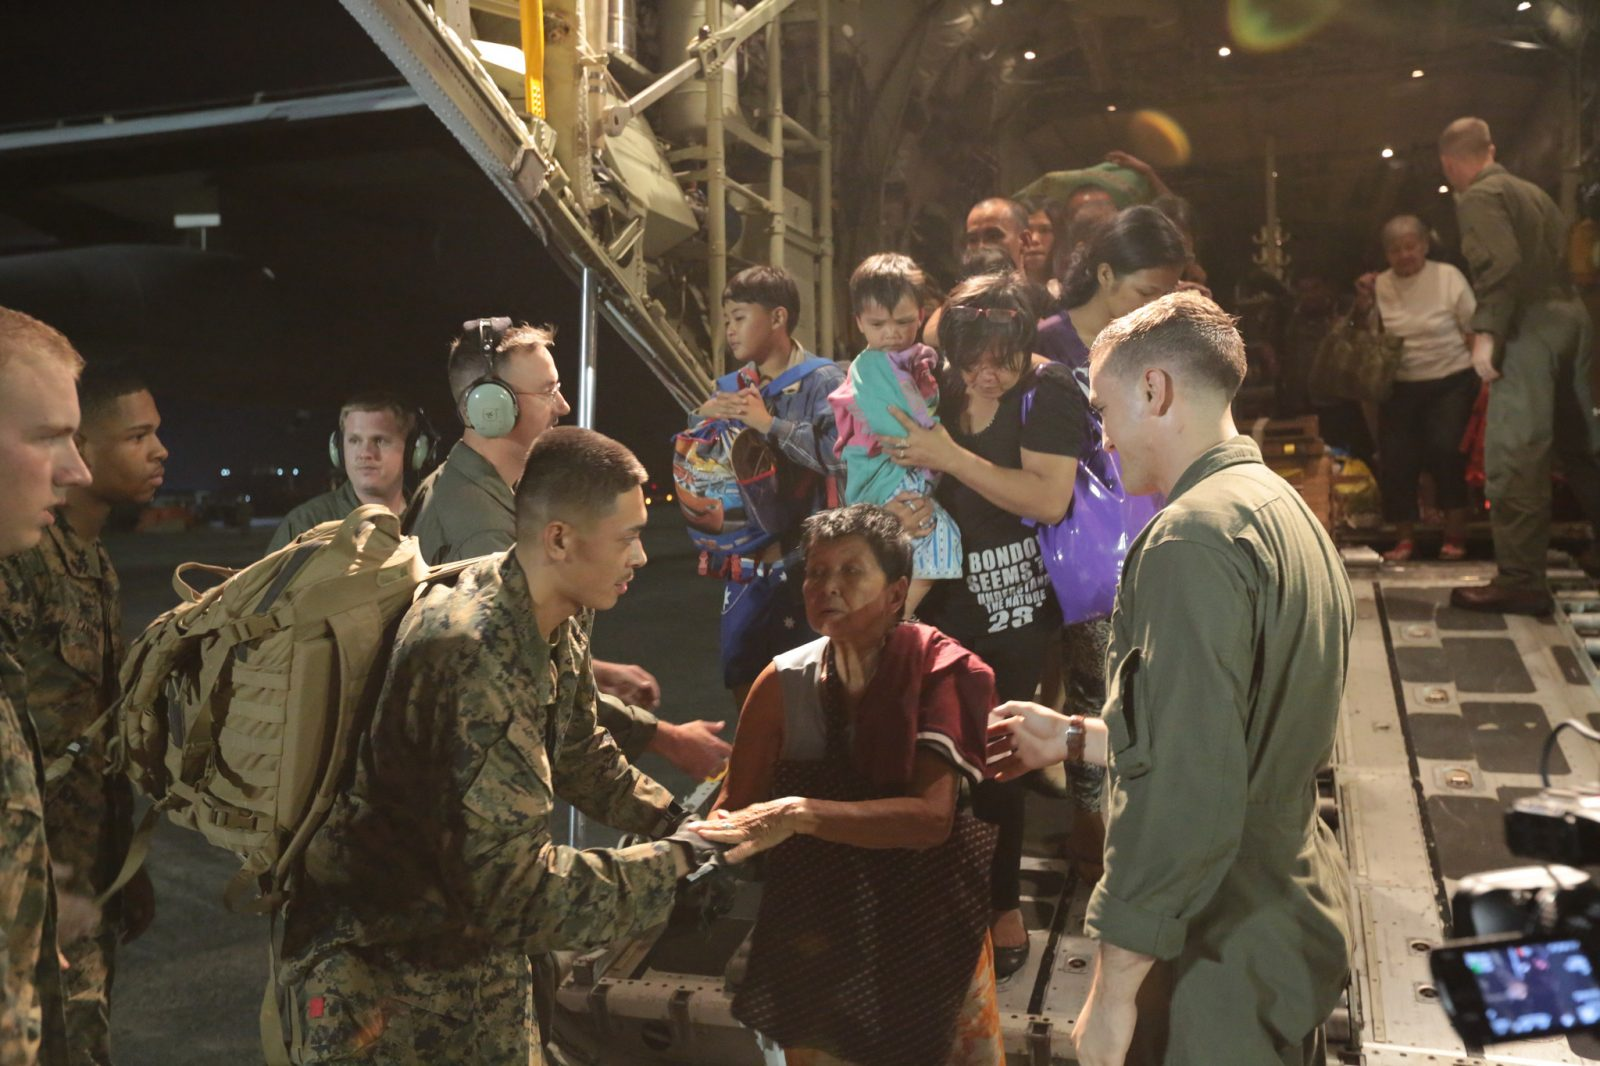 U.S. Marines help displaced Philippine nationals from the back of a KC-130J Super Hercules at Vilamor Air Base, Manila, Republic of the Philippines Nov. 11. Super Typhoon Haiyan has impacted more than 4.2 million people across 36 provinces in the Philippines, according to the Philippine government's national disaster risk reduction and management council. Photo by Lance Cpl. Caleb Hoover / Wikipedia